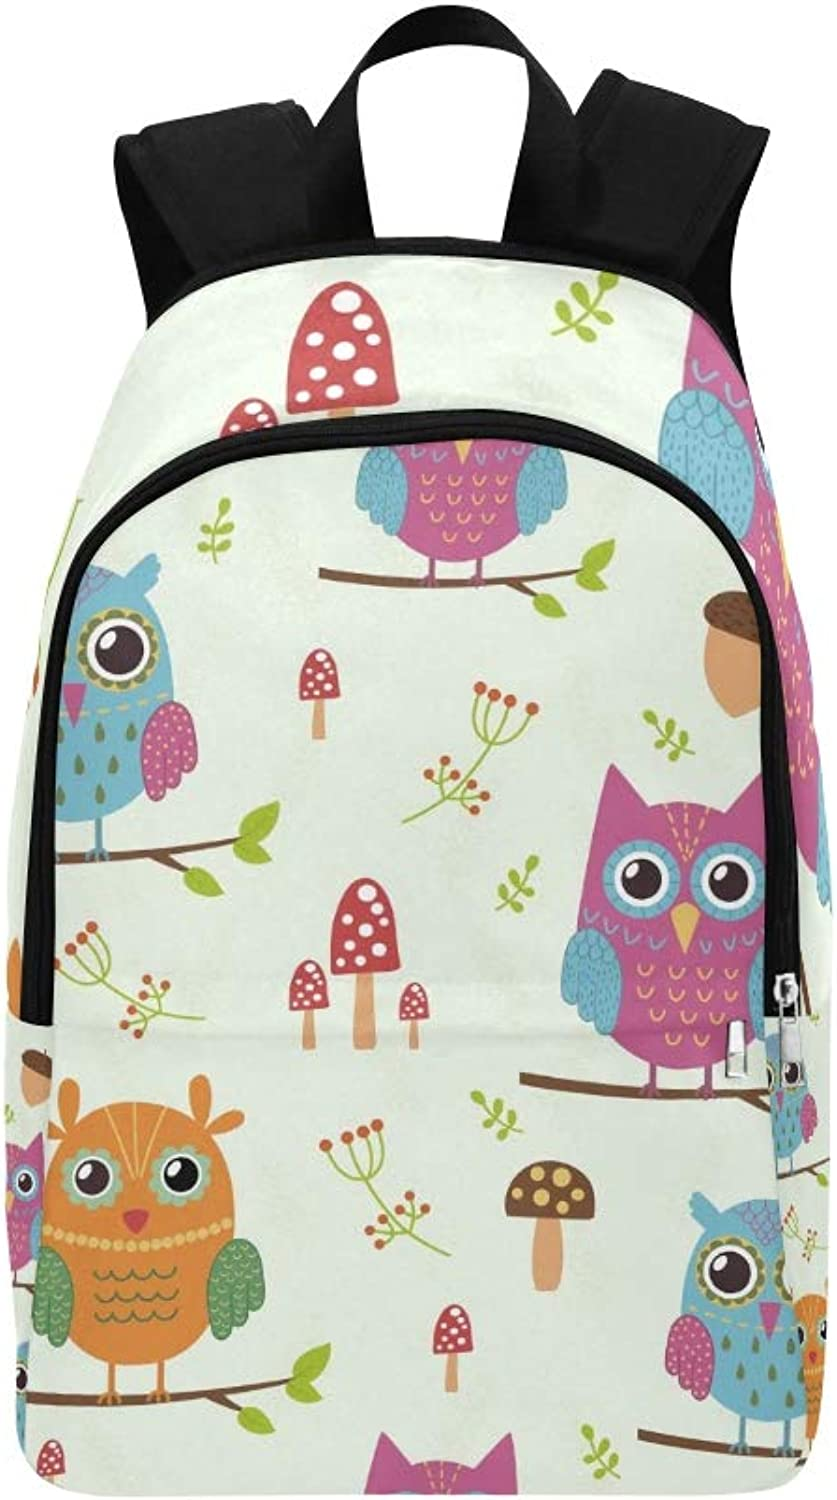 Forest Cute Owls Great Casual Daypack Travel Bag College School Backpack for Mens and Women